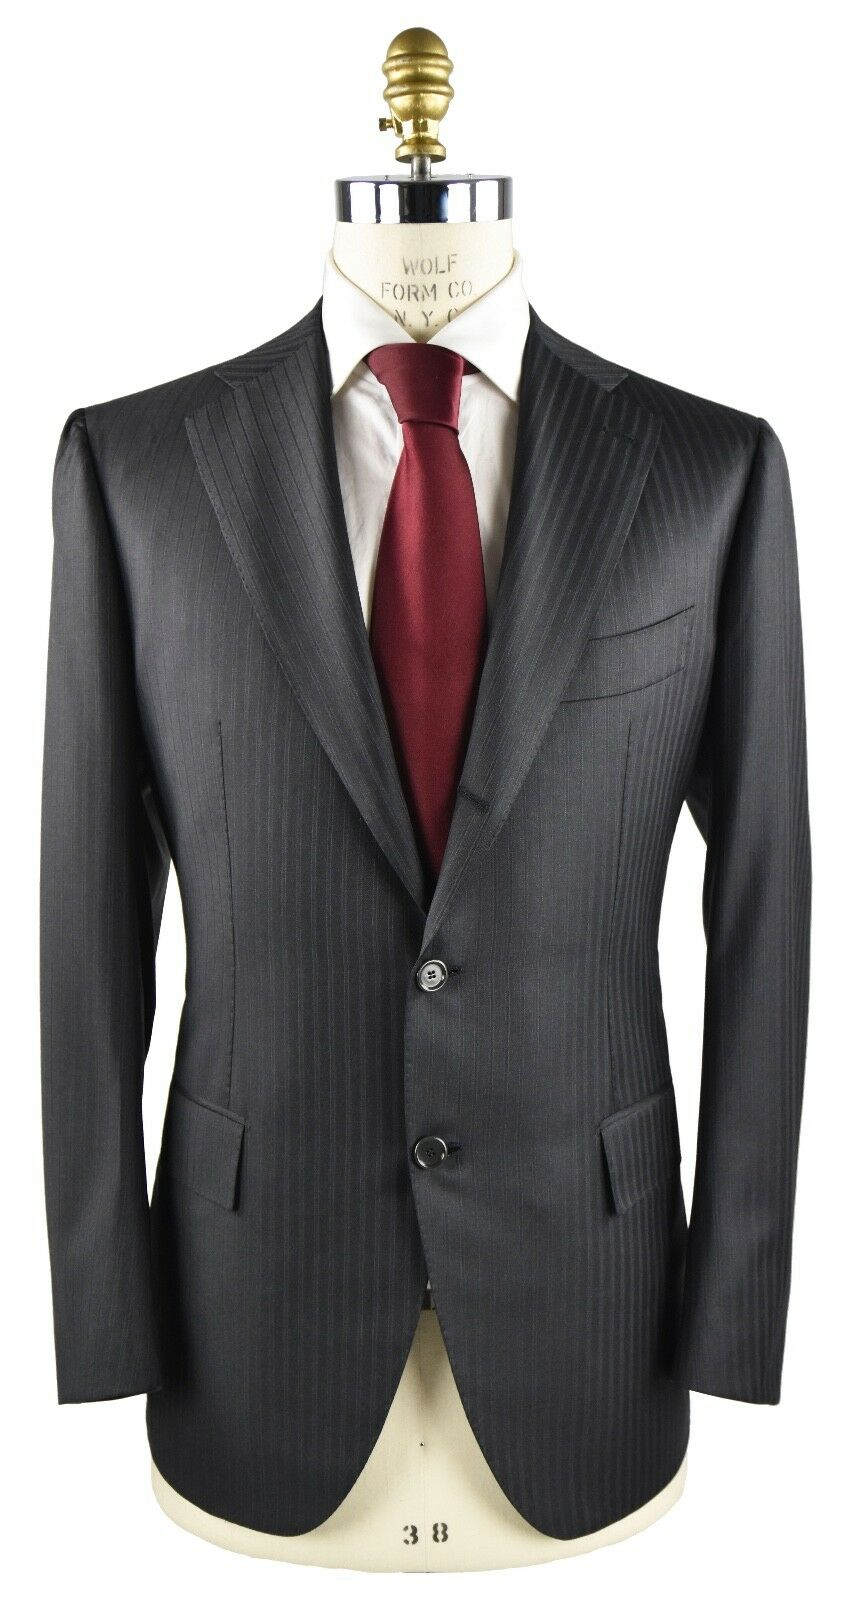 NEW CESARE ATTOLINI SUITS  WOOL 130'S AND CASHMERE SZ 40 US 50 EU 7R 18AV94